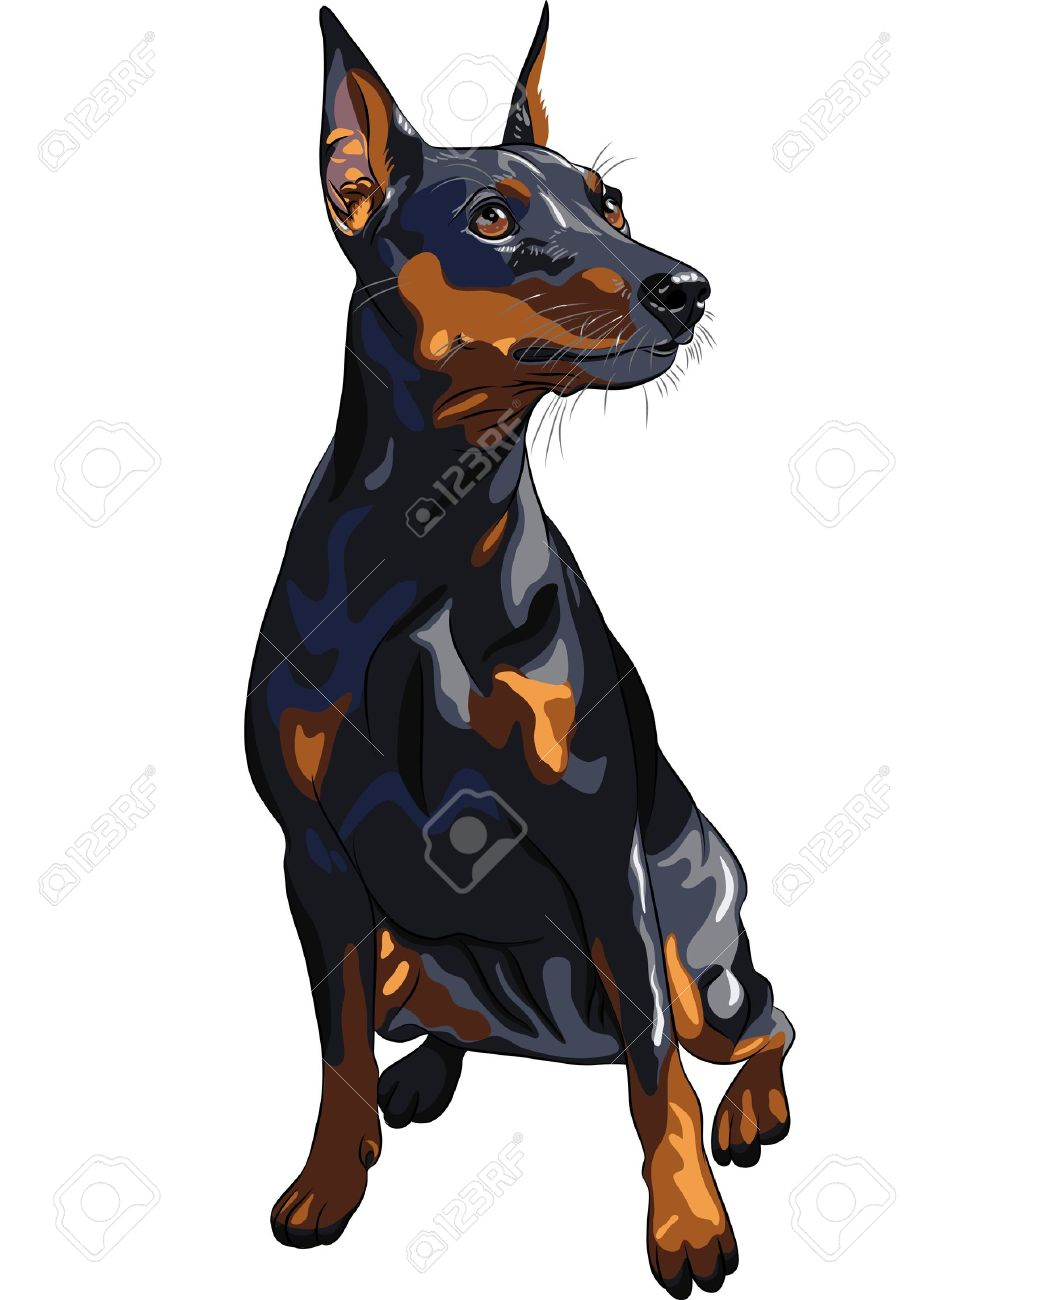 Miniature Pinscher clipart #6, Download drawings